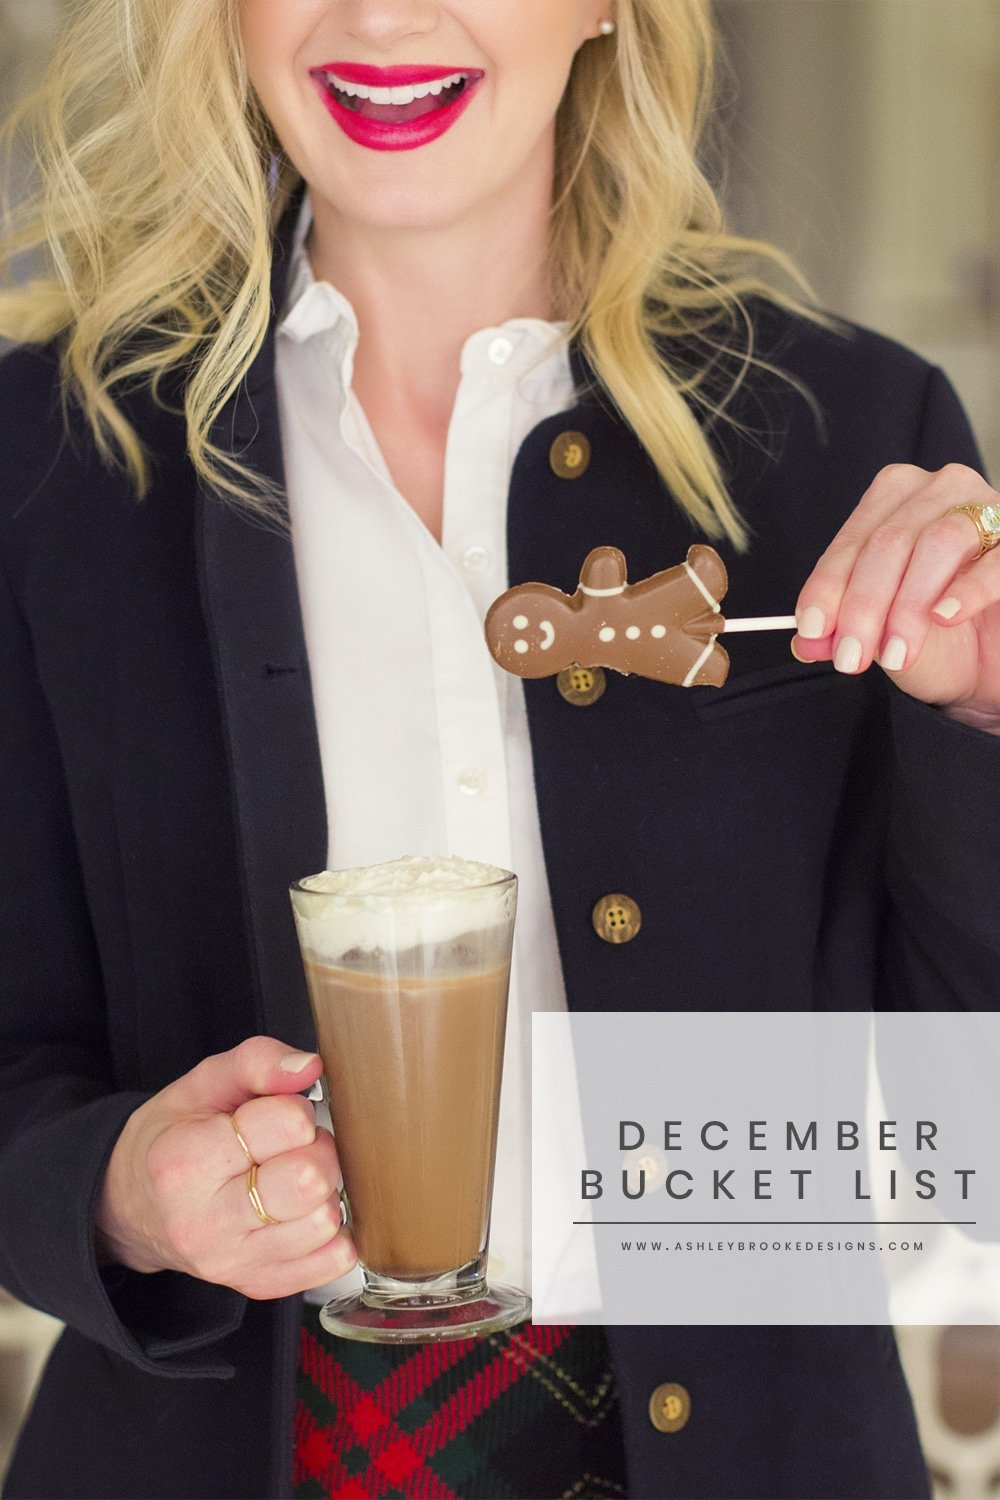 The December Bucket List that will have you feeling festive all month long! | www.ashleybrookedesigns.com